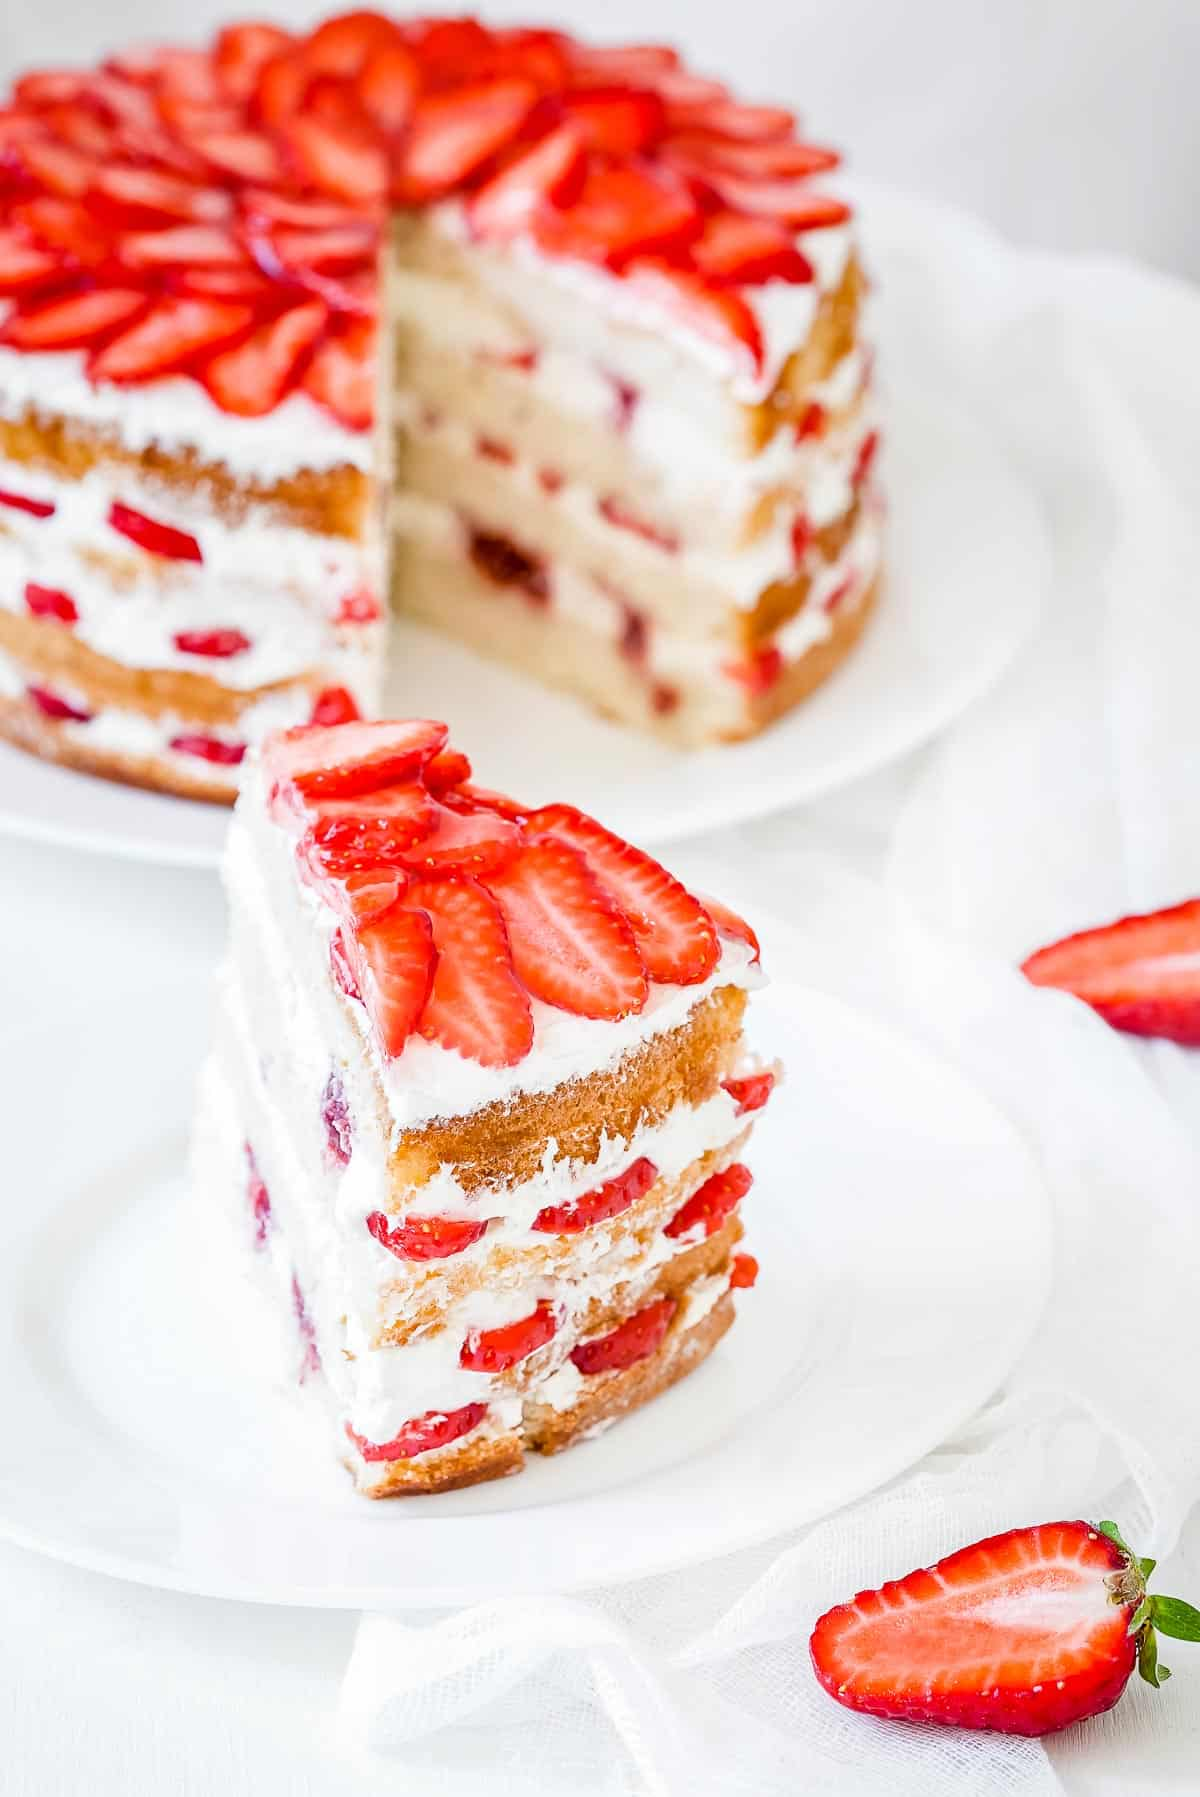 A strawberry shortcake with a piece cut out of it.